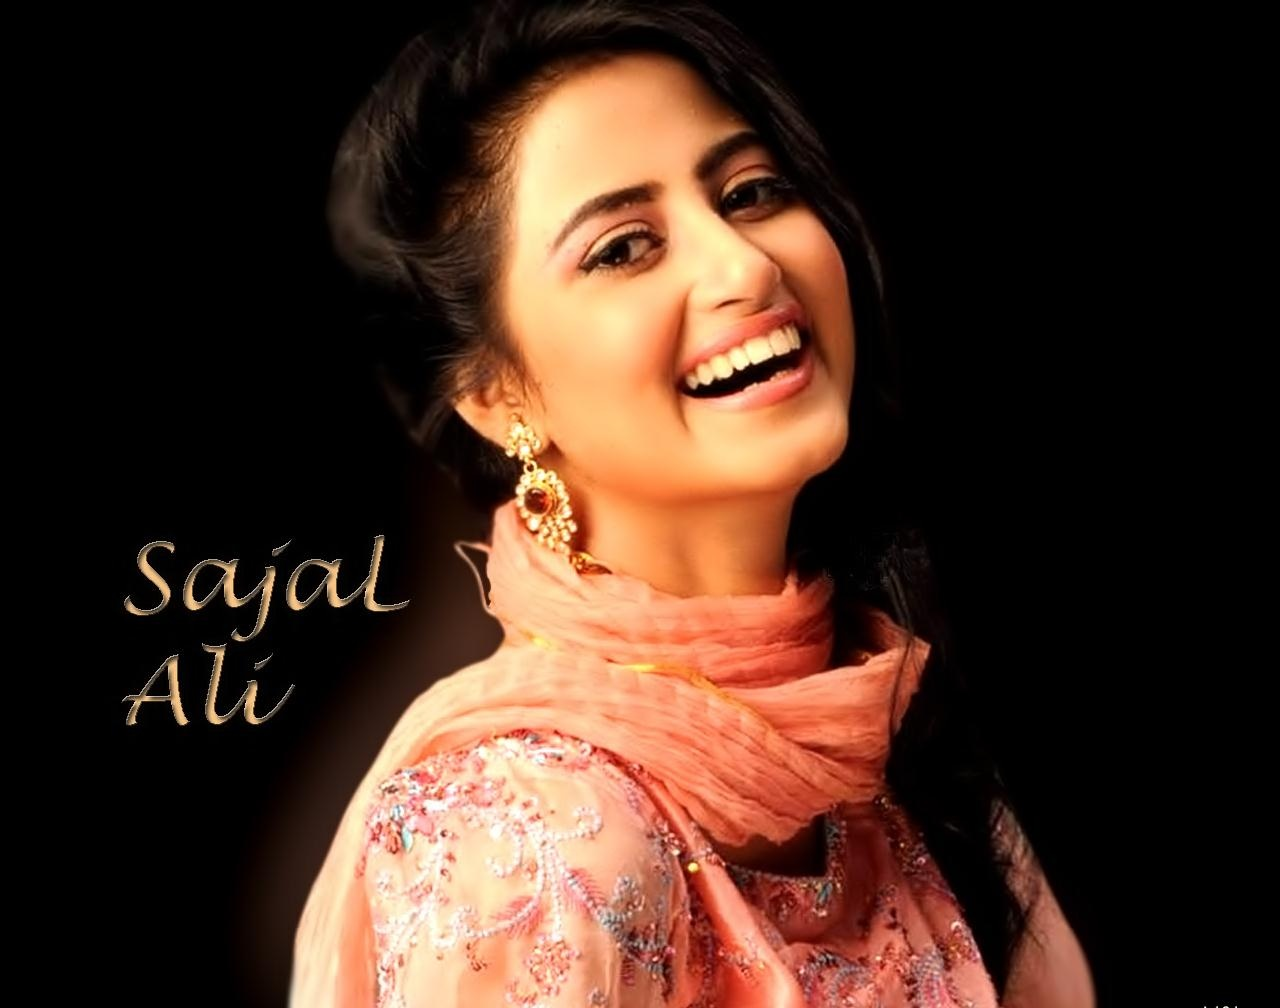 Sajal Ali HD Wallpapers Free Download